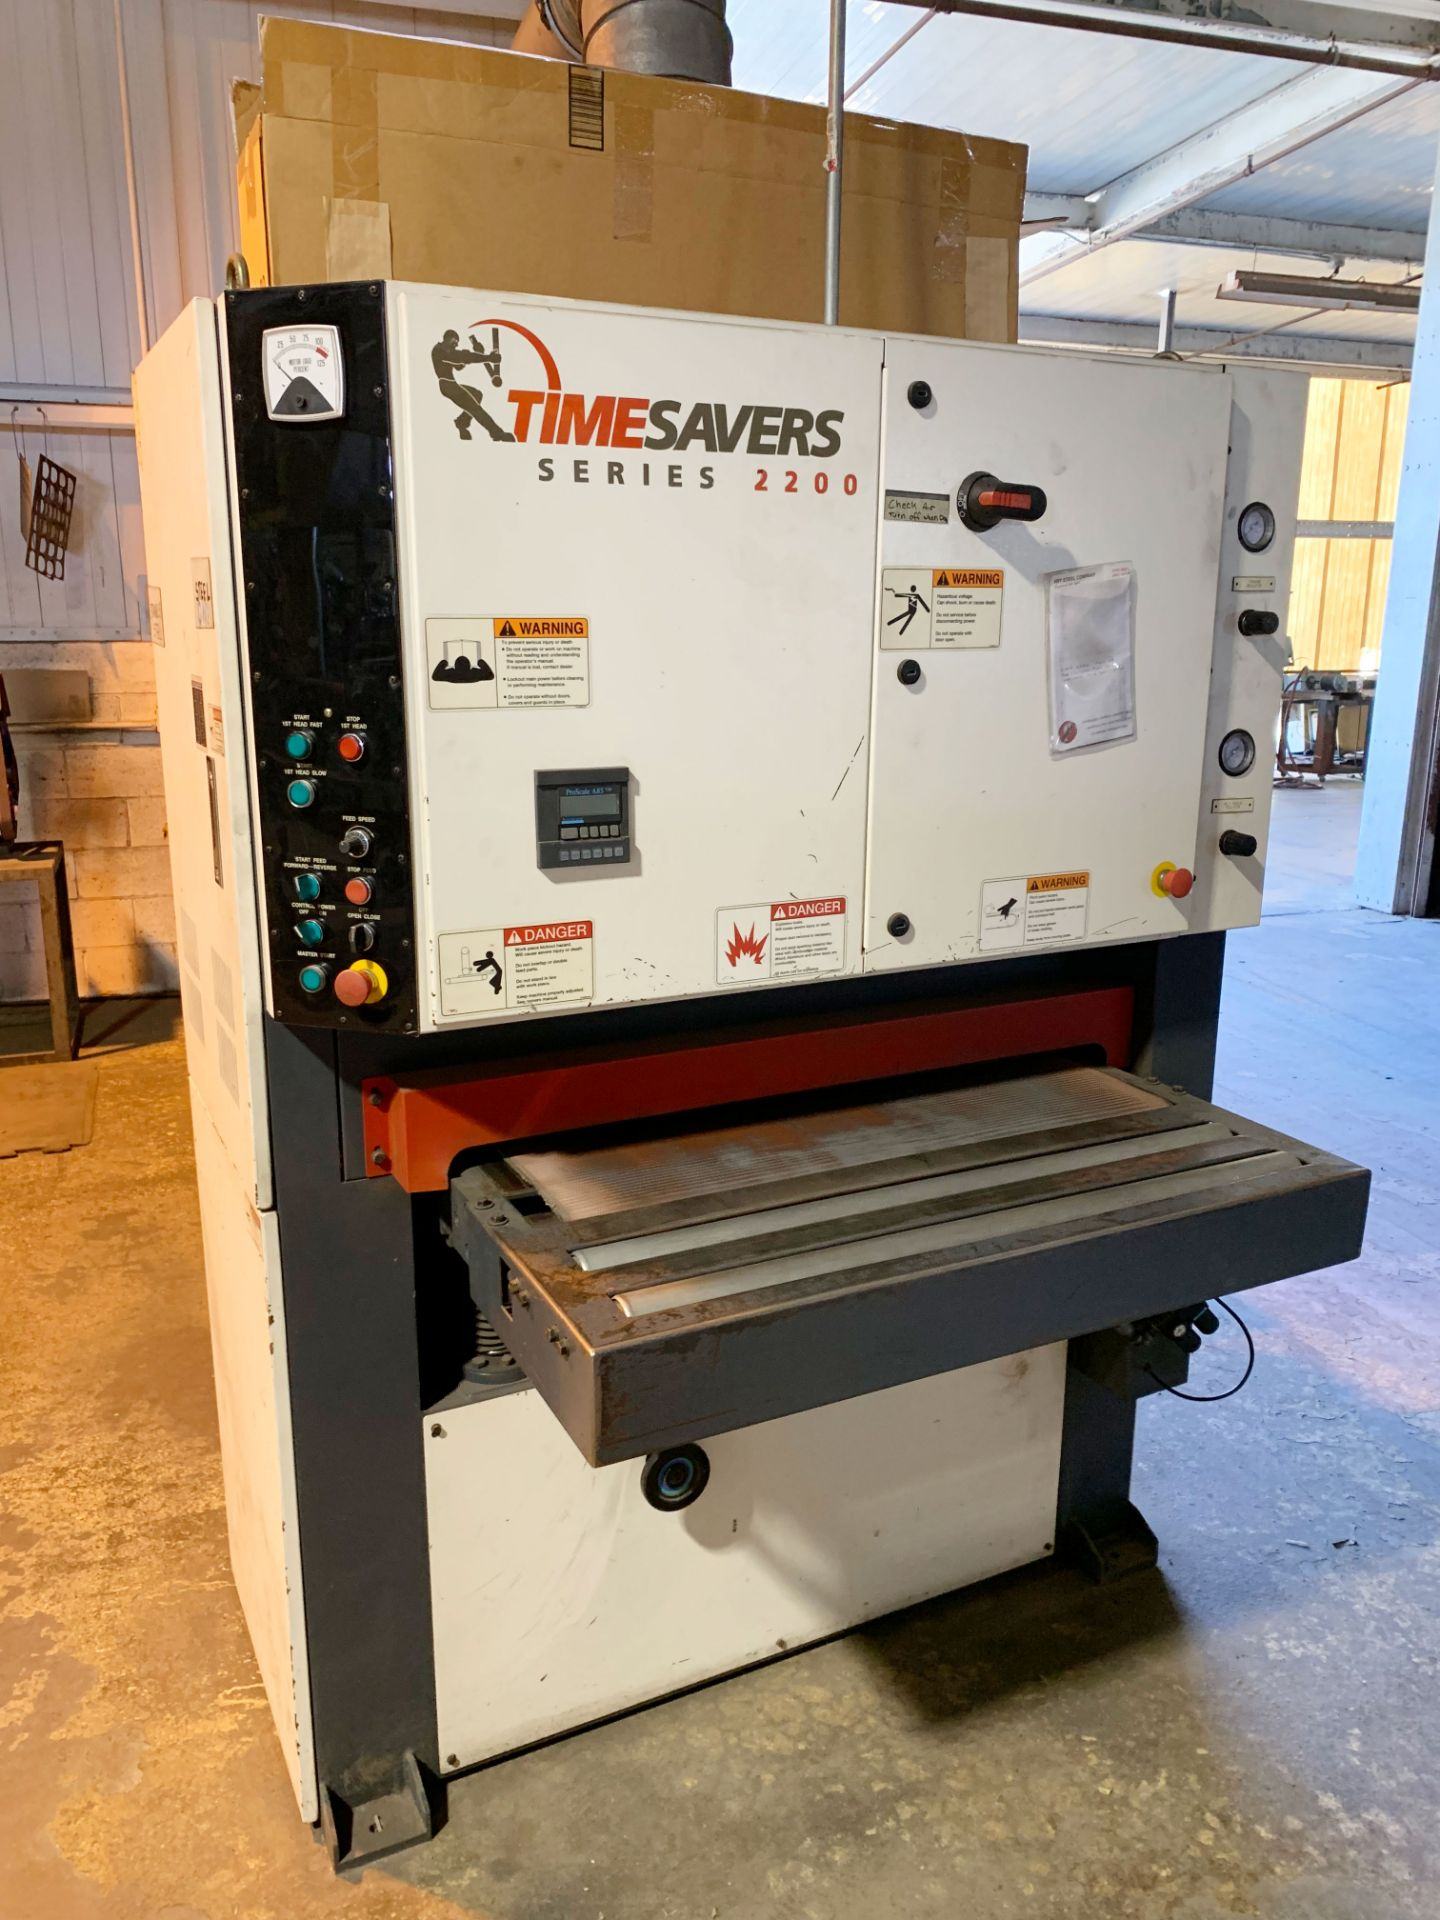 Lot 0 - (18) HAAS CNC MACHINING & TURNING CENTERS, FROM (2017), LATHES, MILLS, CNC WATERJETS, PRESS BRAKES